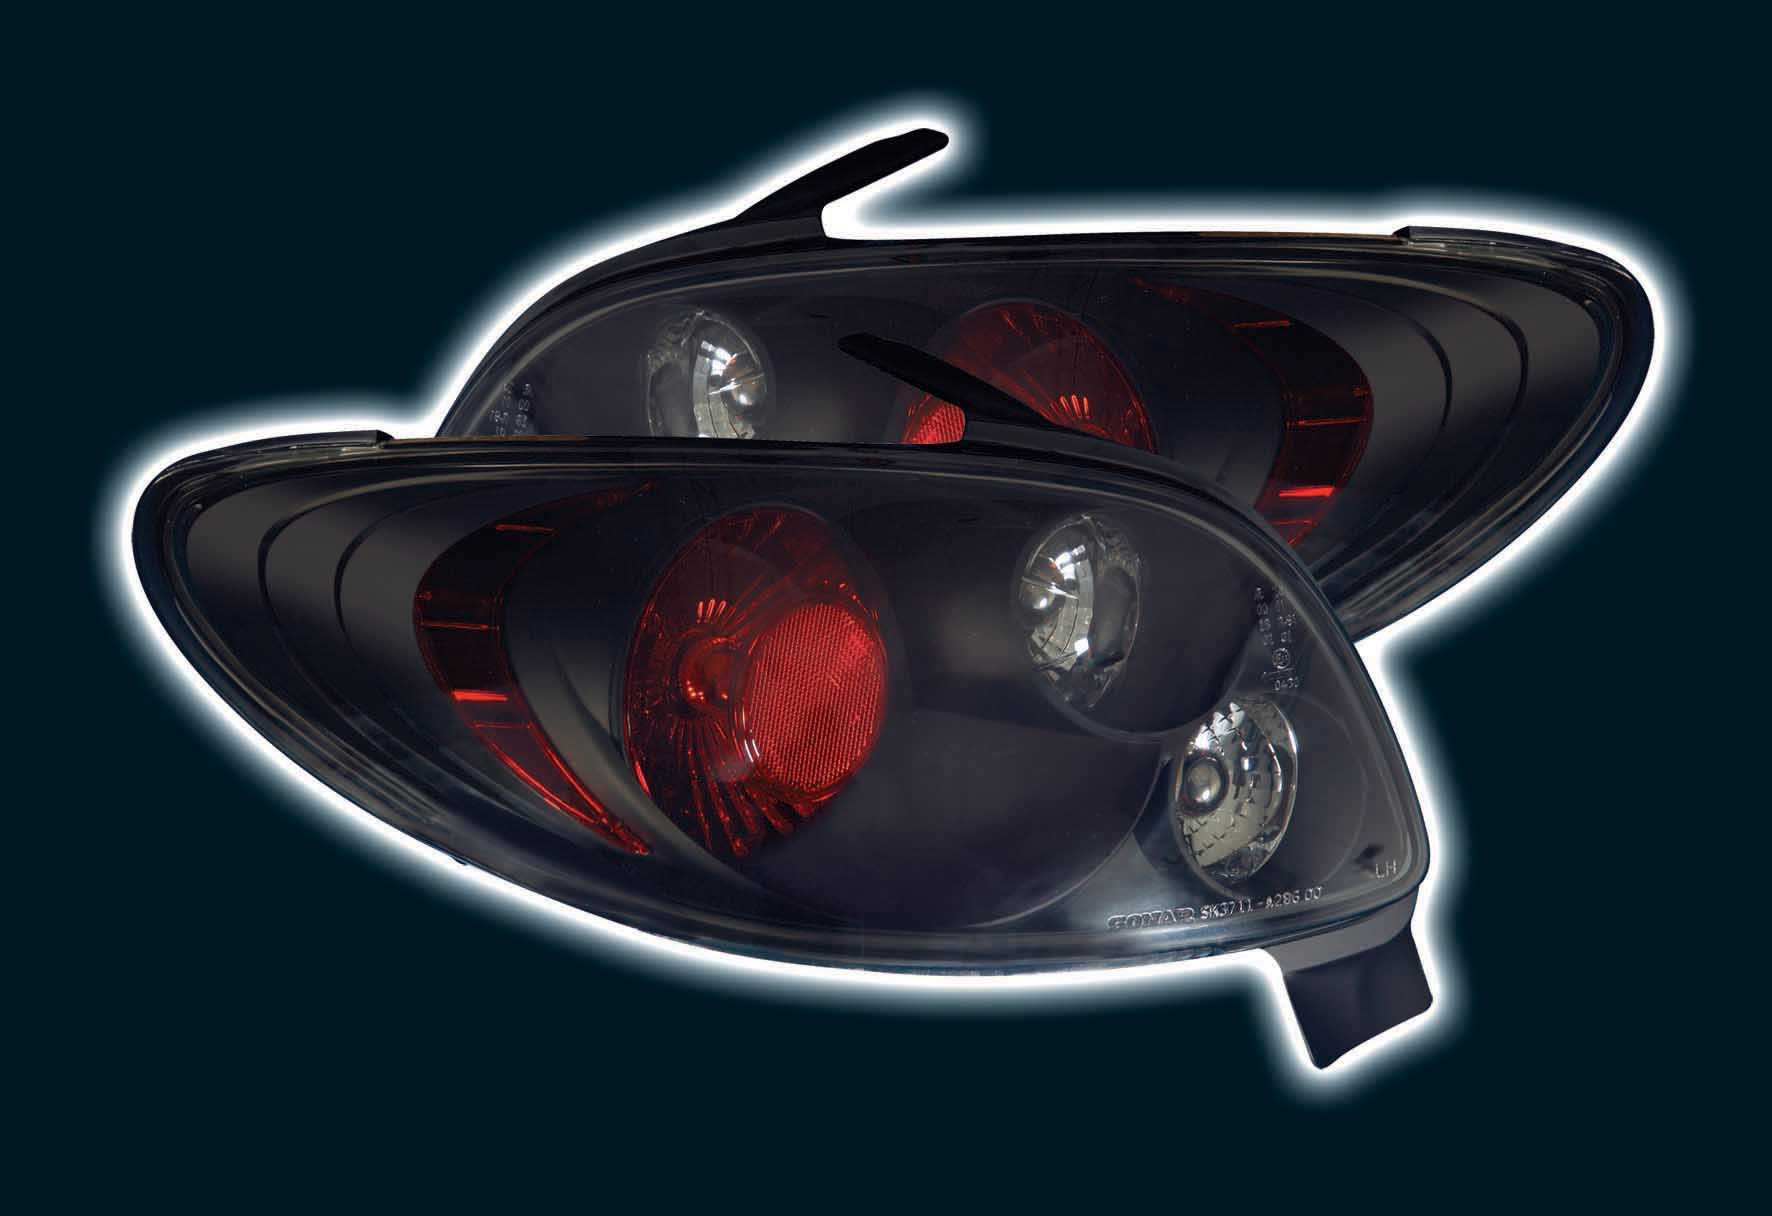 peugeot 206cc cabrio black lexus back rear tail lights lamps